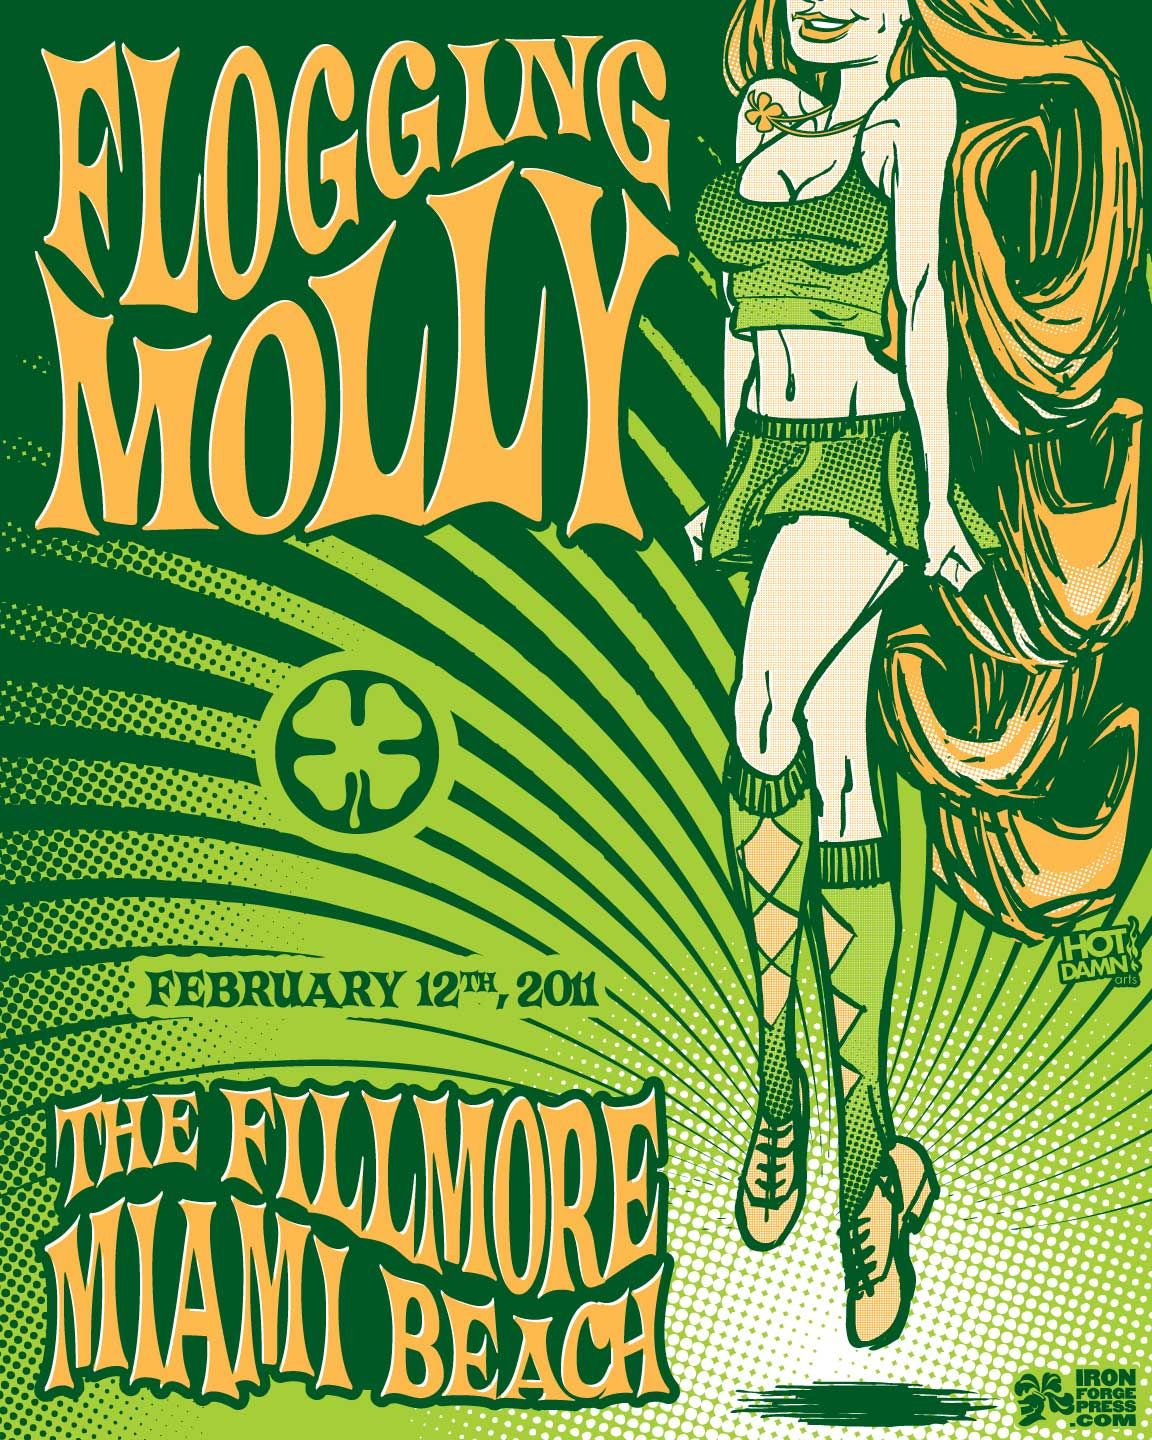 Fillmore Miami Beach?  that's just not right.